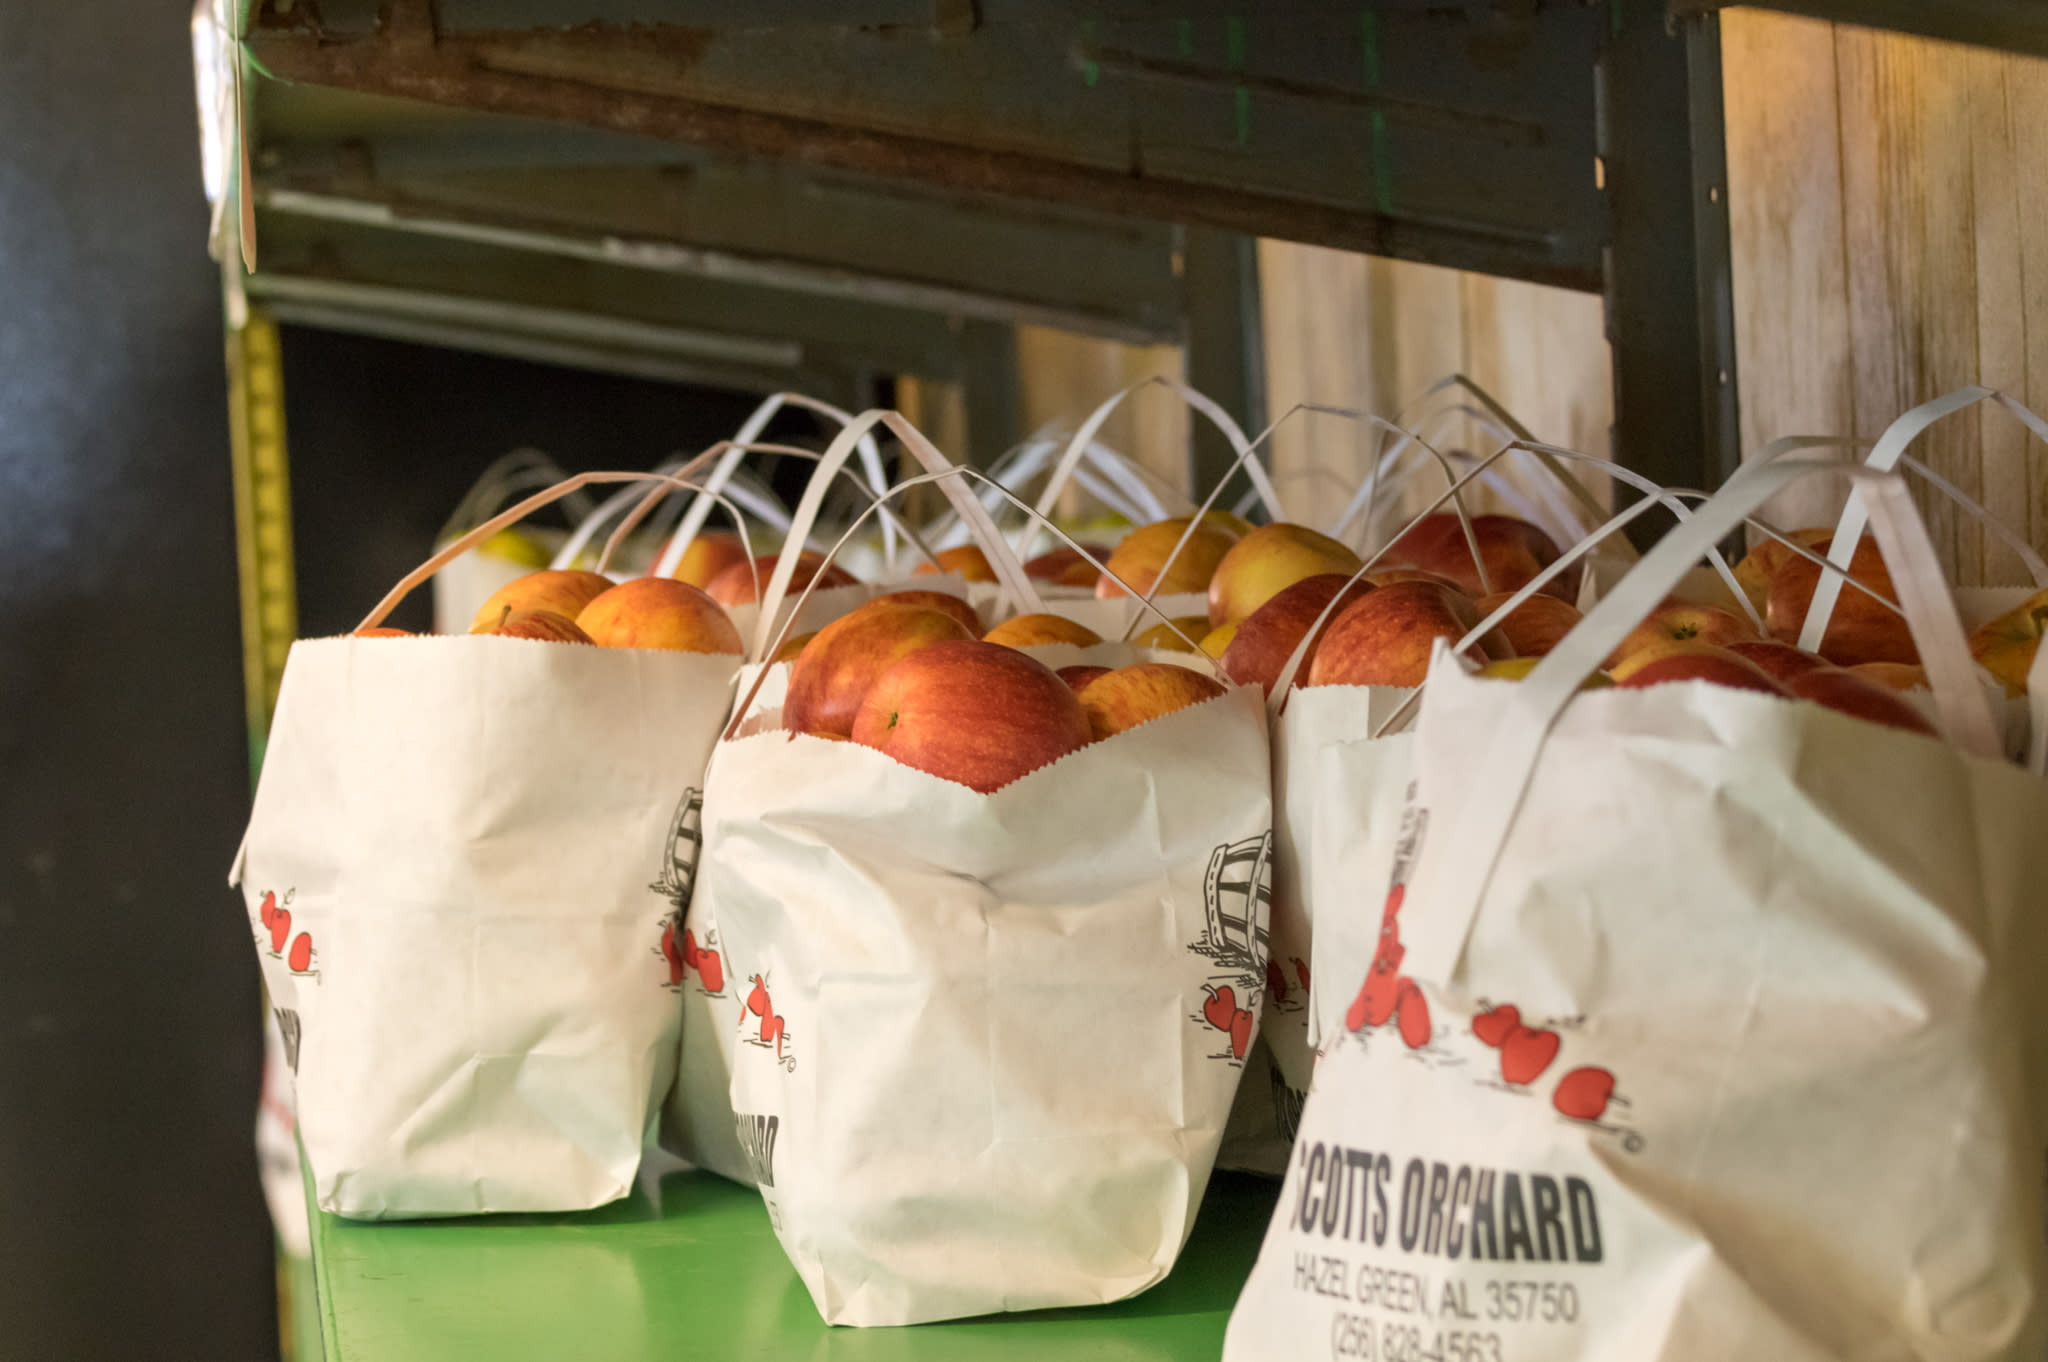 This is a photo of bags of apples from Scott's Orchard.